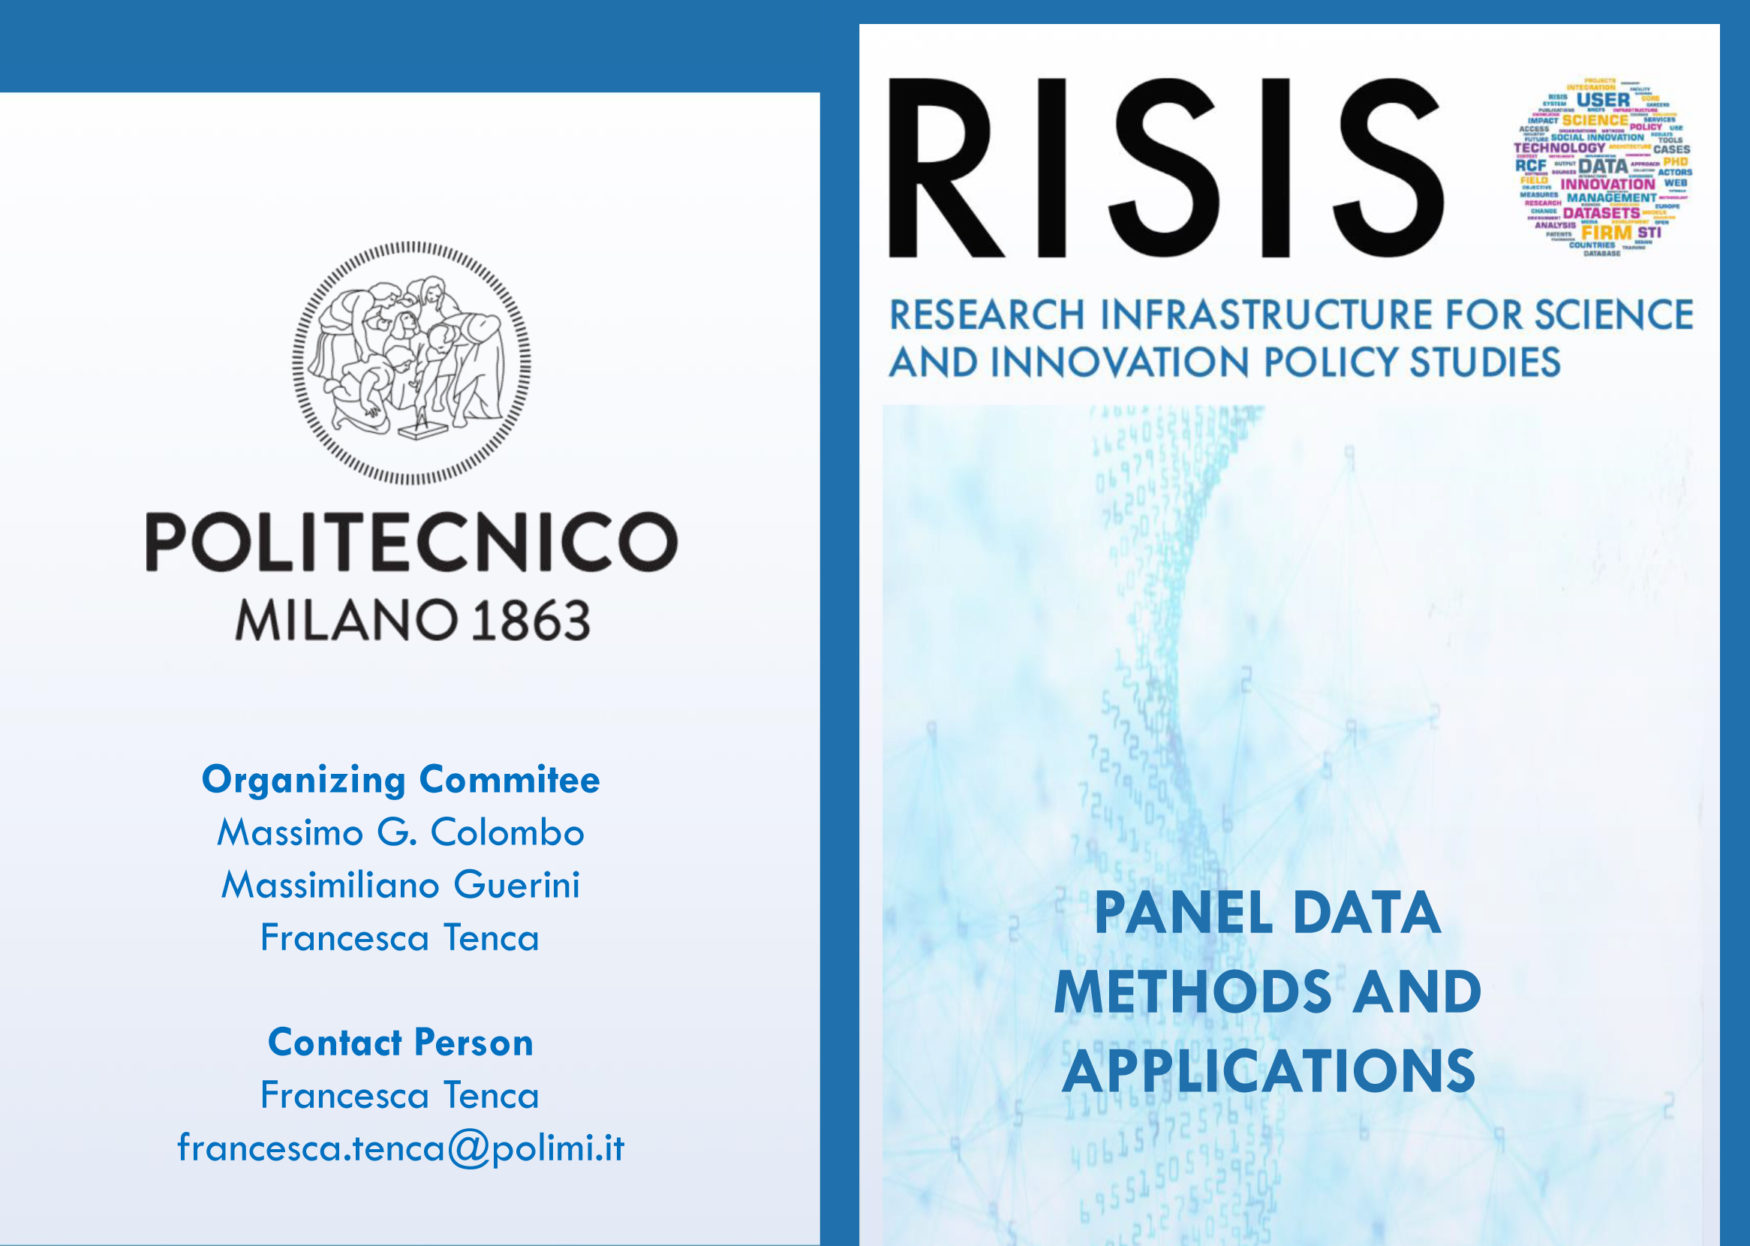 RISIS Online Training on Panel Data Methods and Applications